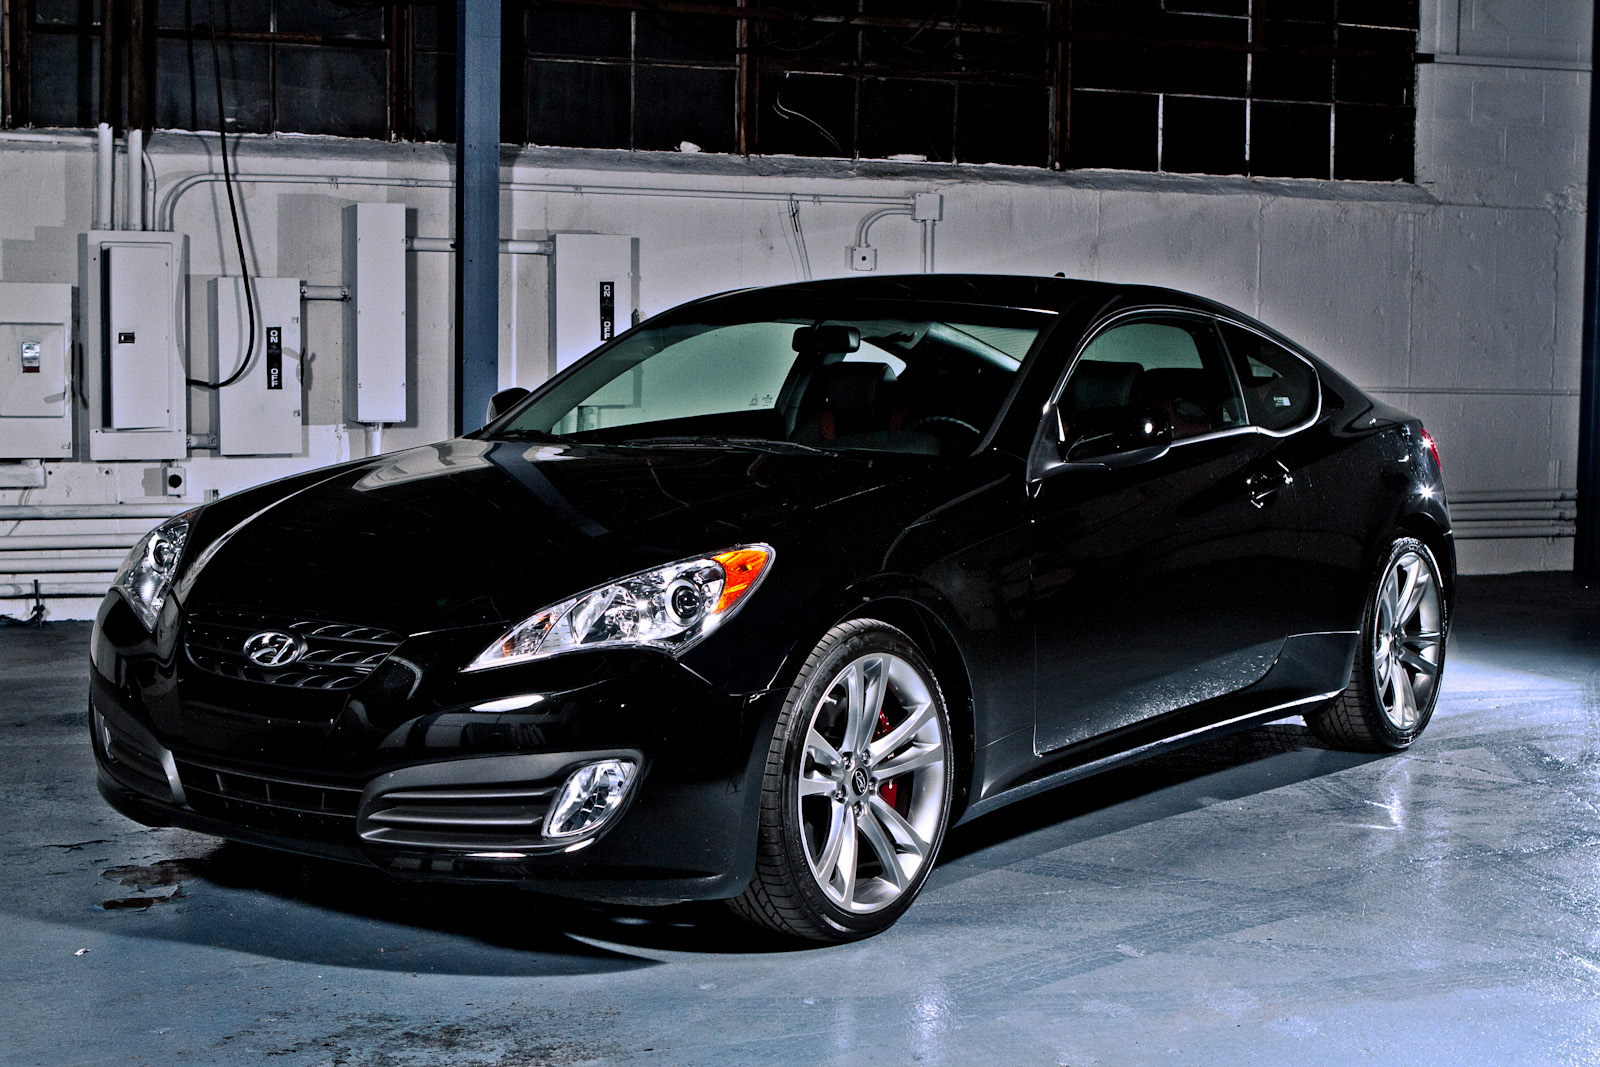 pumped up kicks 2011 hyundai genesis coupe 3 8 r spec. Black Bedroom Furniture Sets. Home Design Ideas